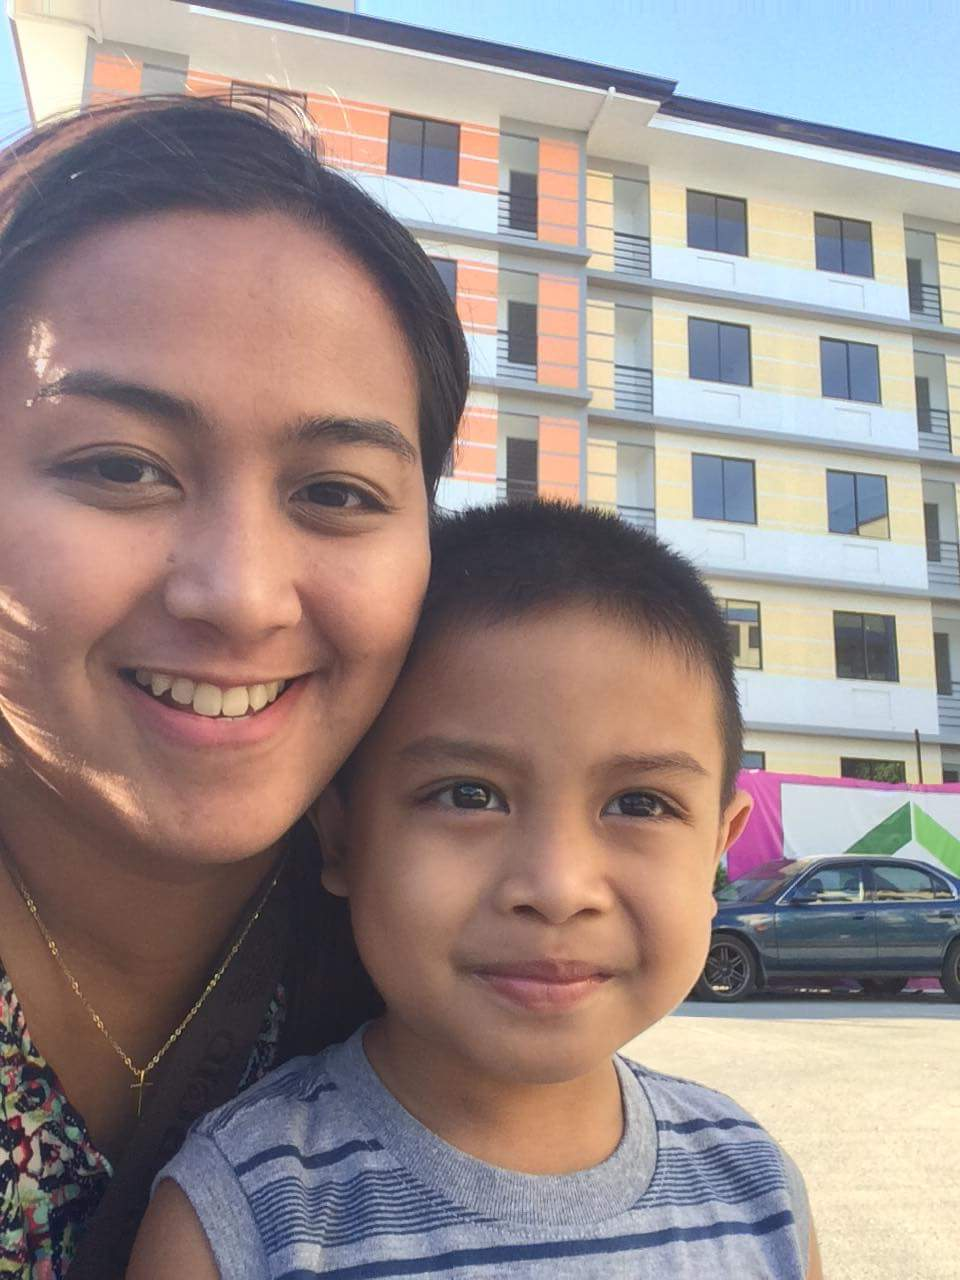 Jane with her son, Andreo.